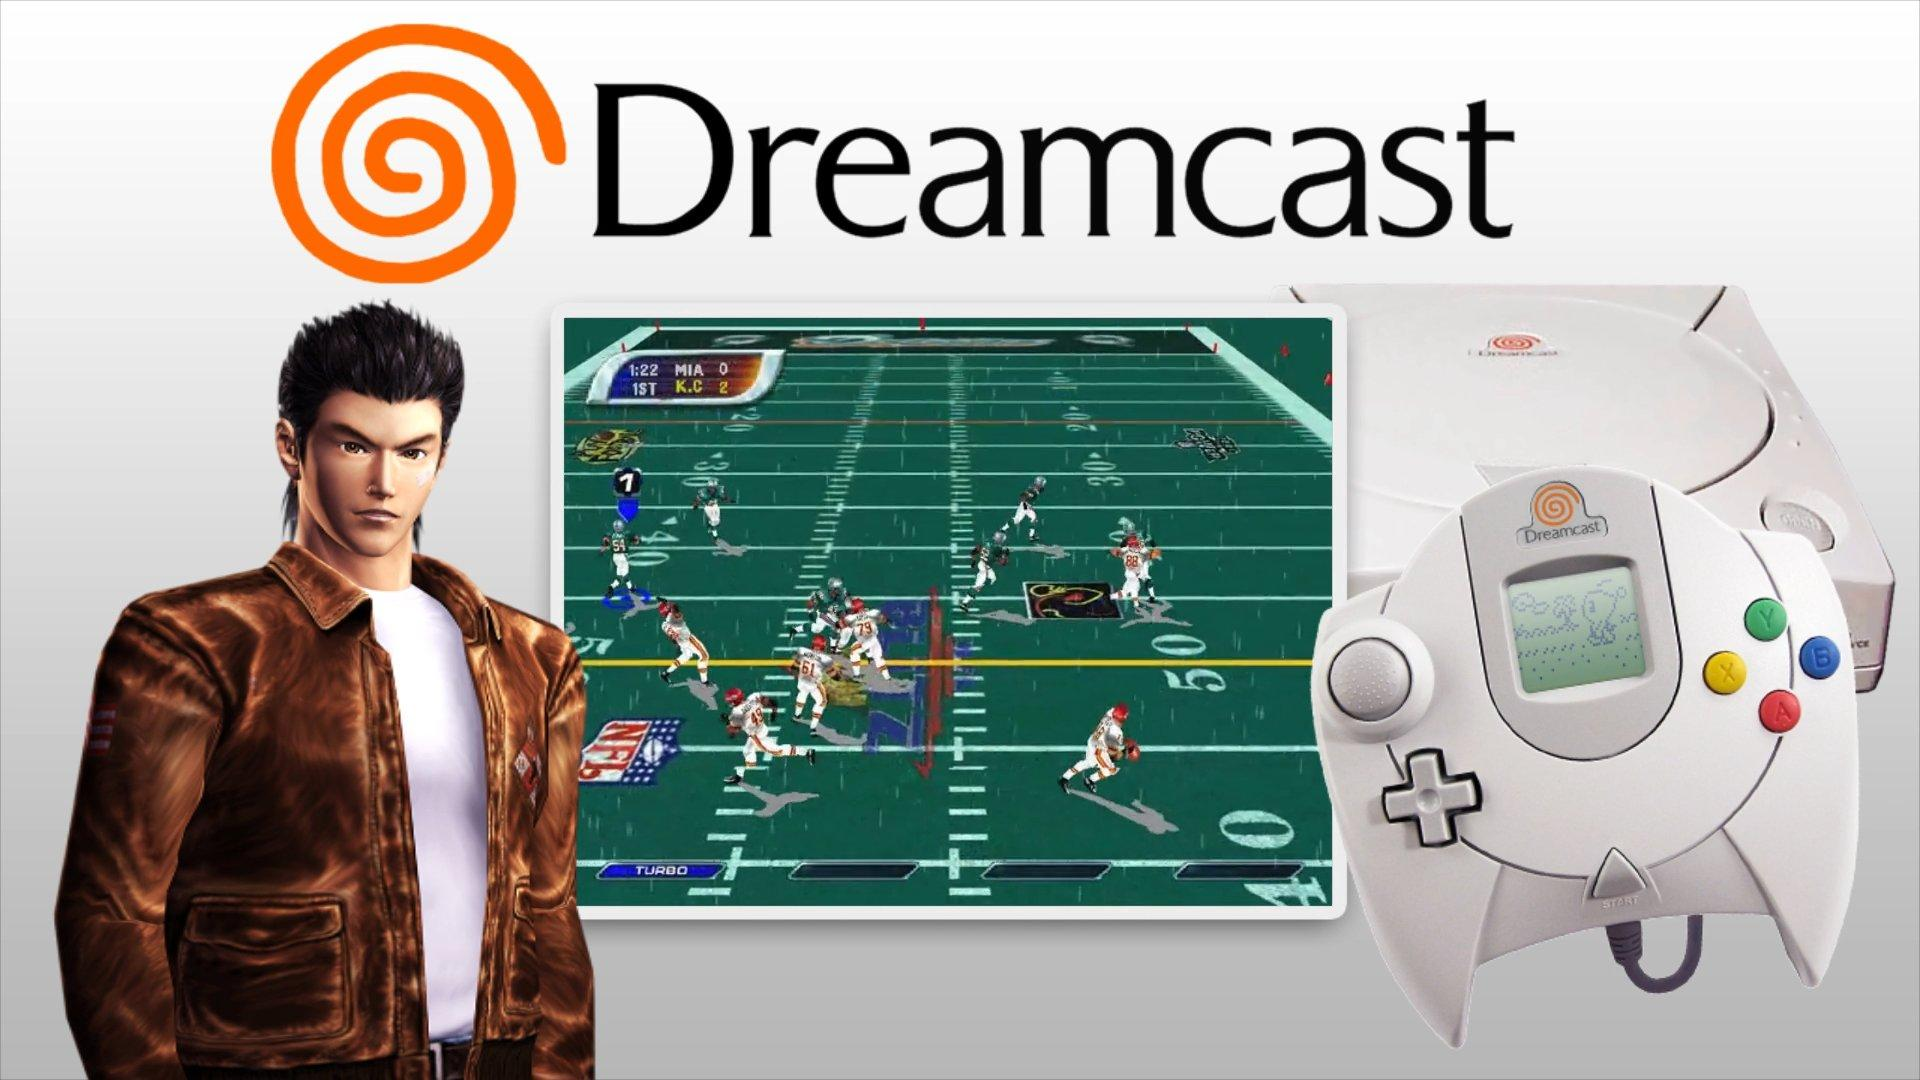 Sega Dreamcast Unified Platform Videos (16:9) (HD)